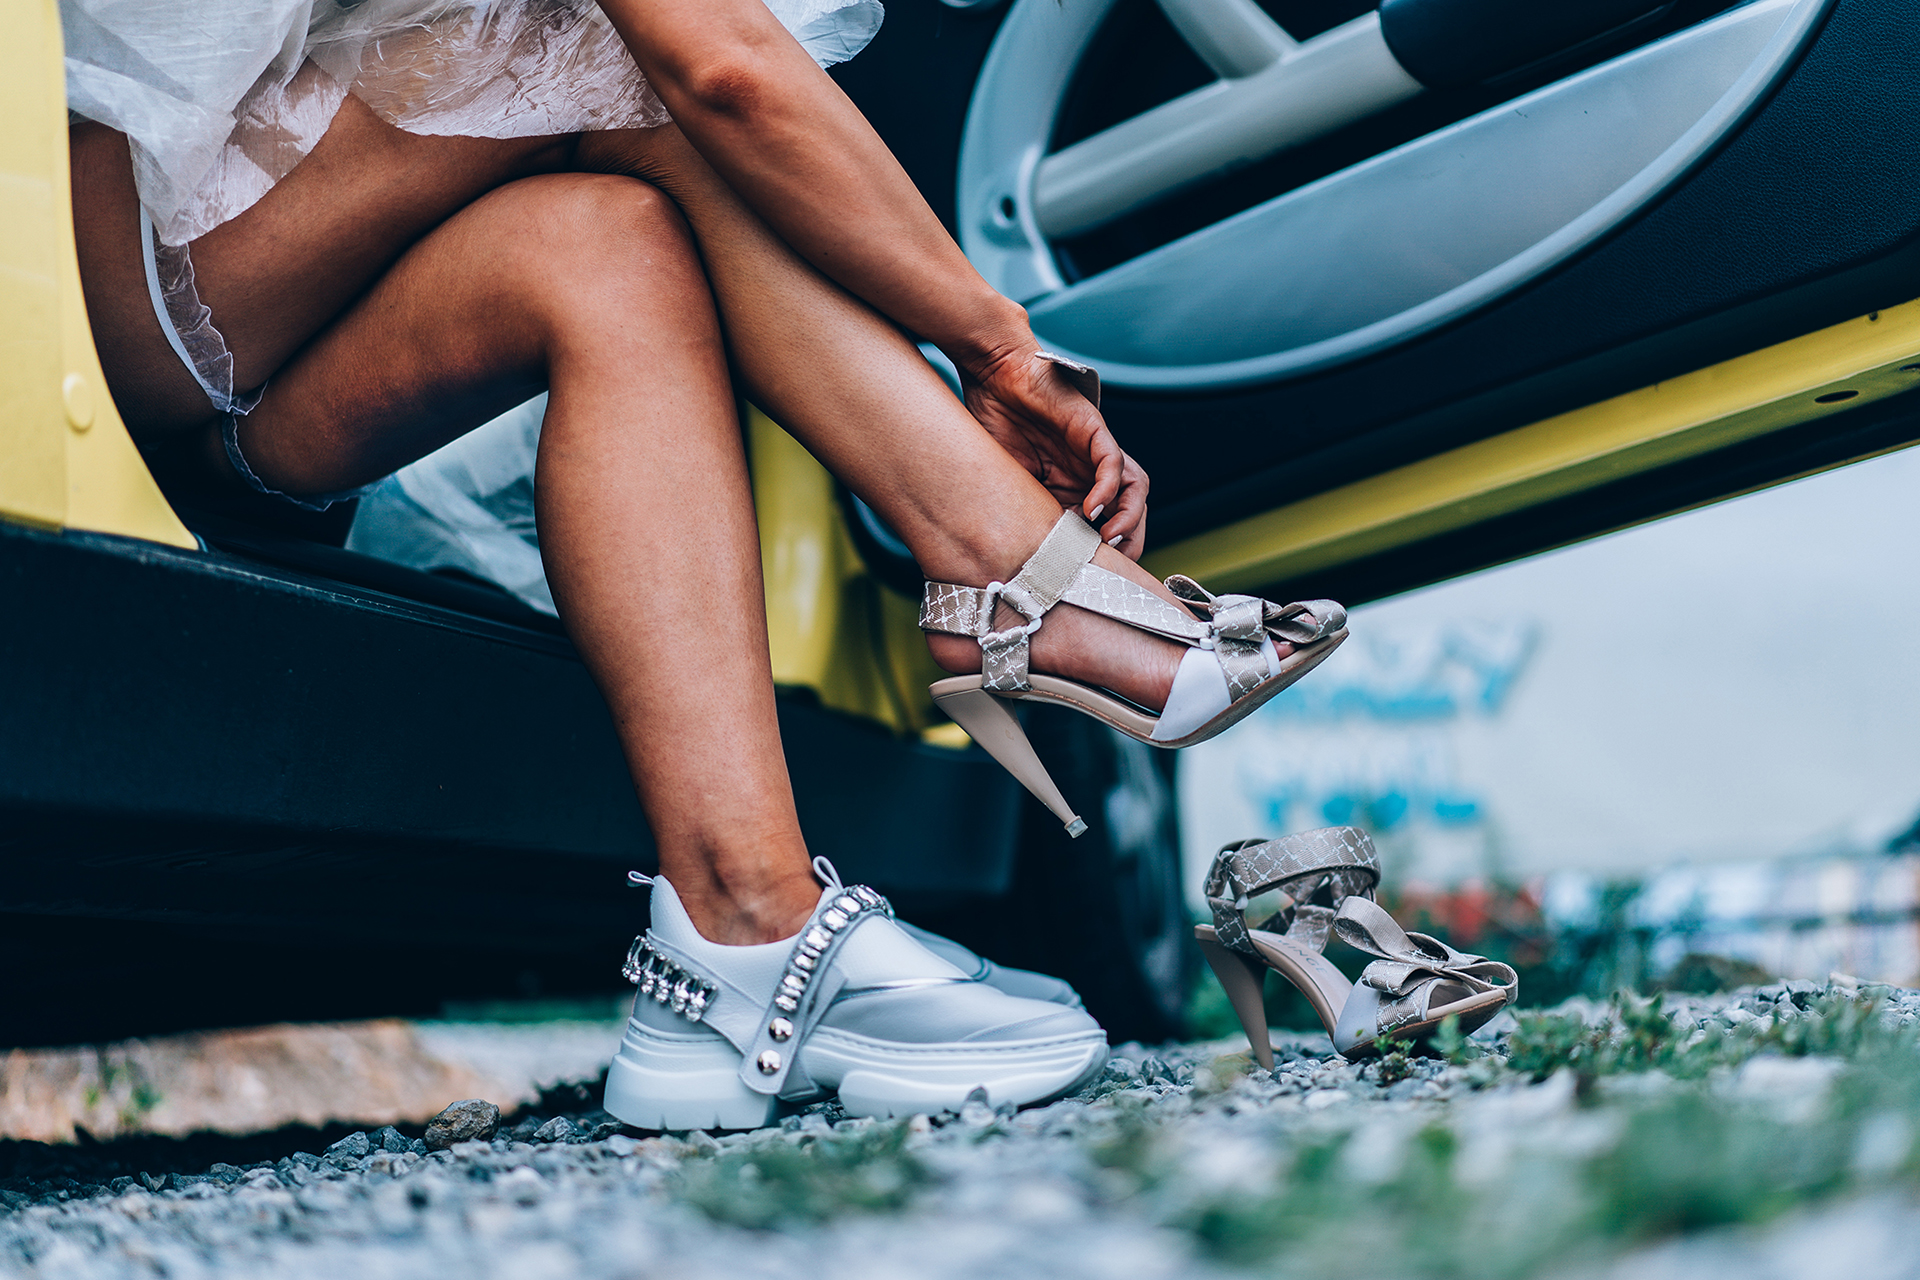 Bulgaria Elopement Detail Images | The bride has cleverly brought a change of shoes for the reception